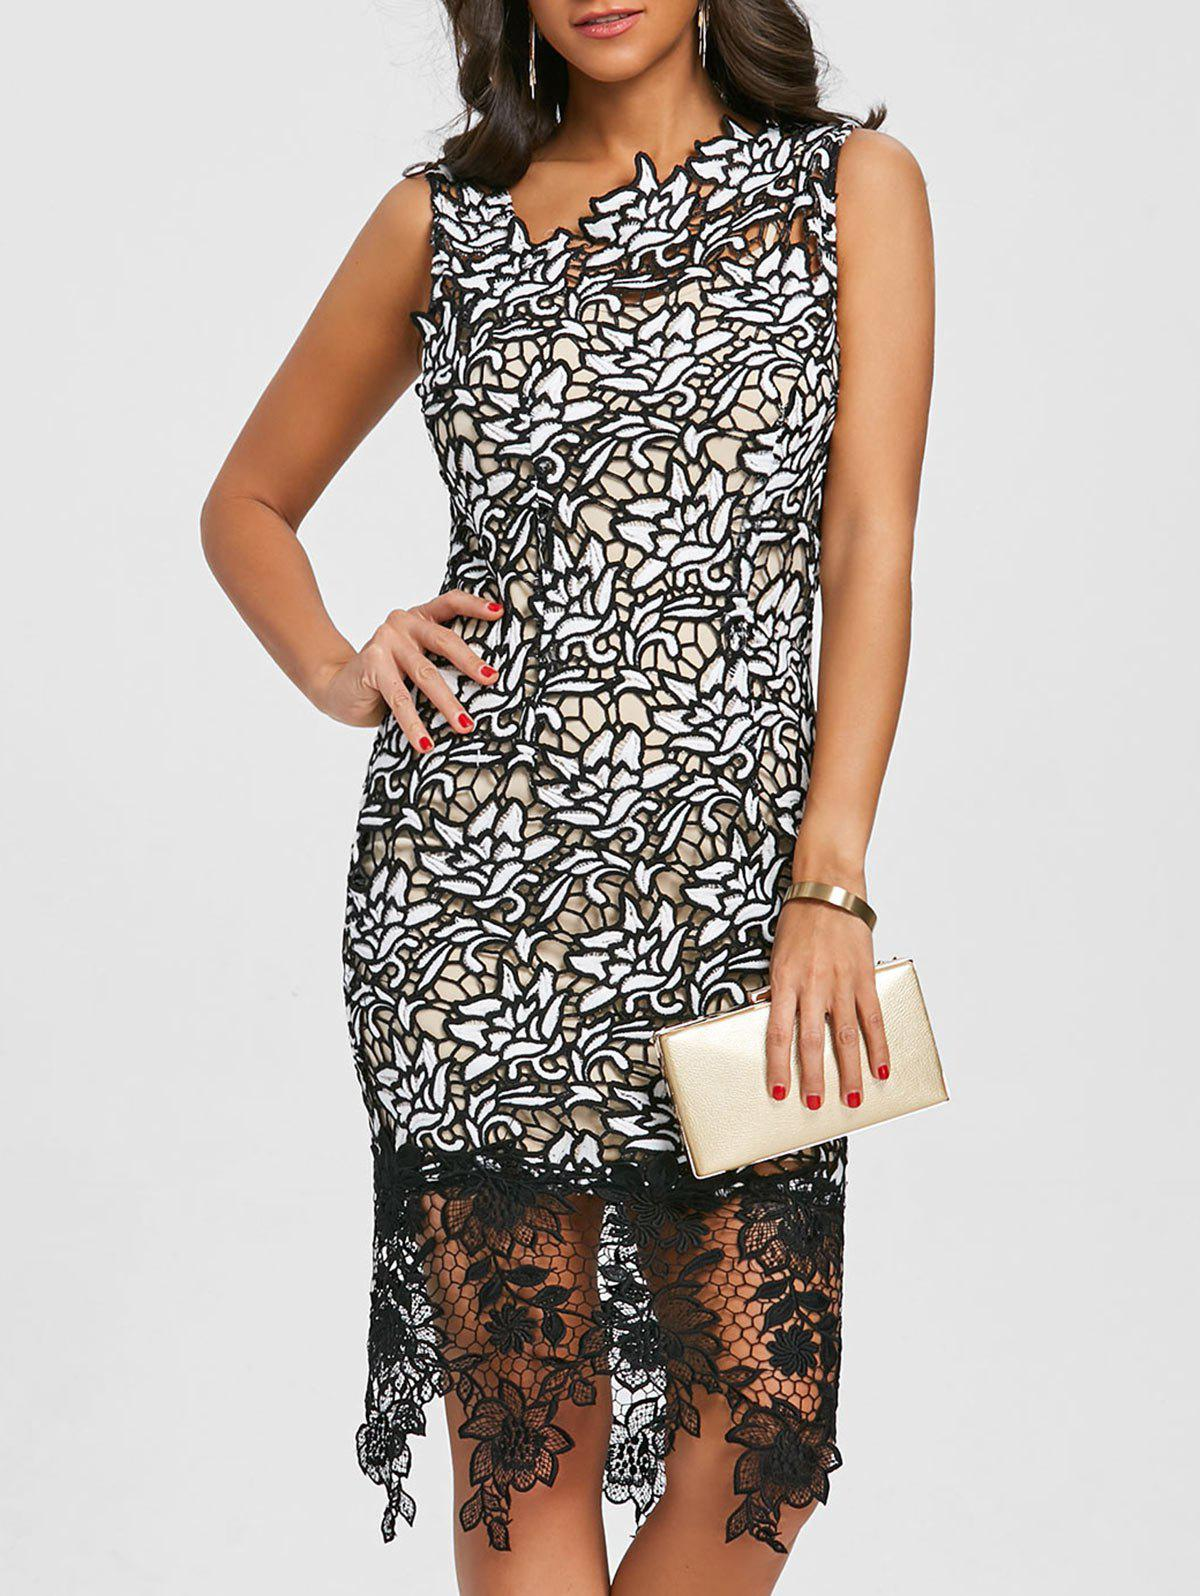 Lace Skew Neck Party Dress - BLACK M